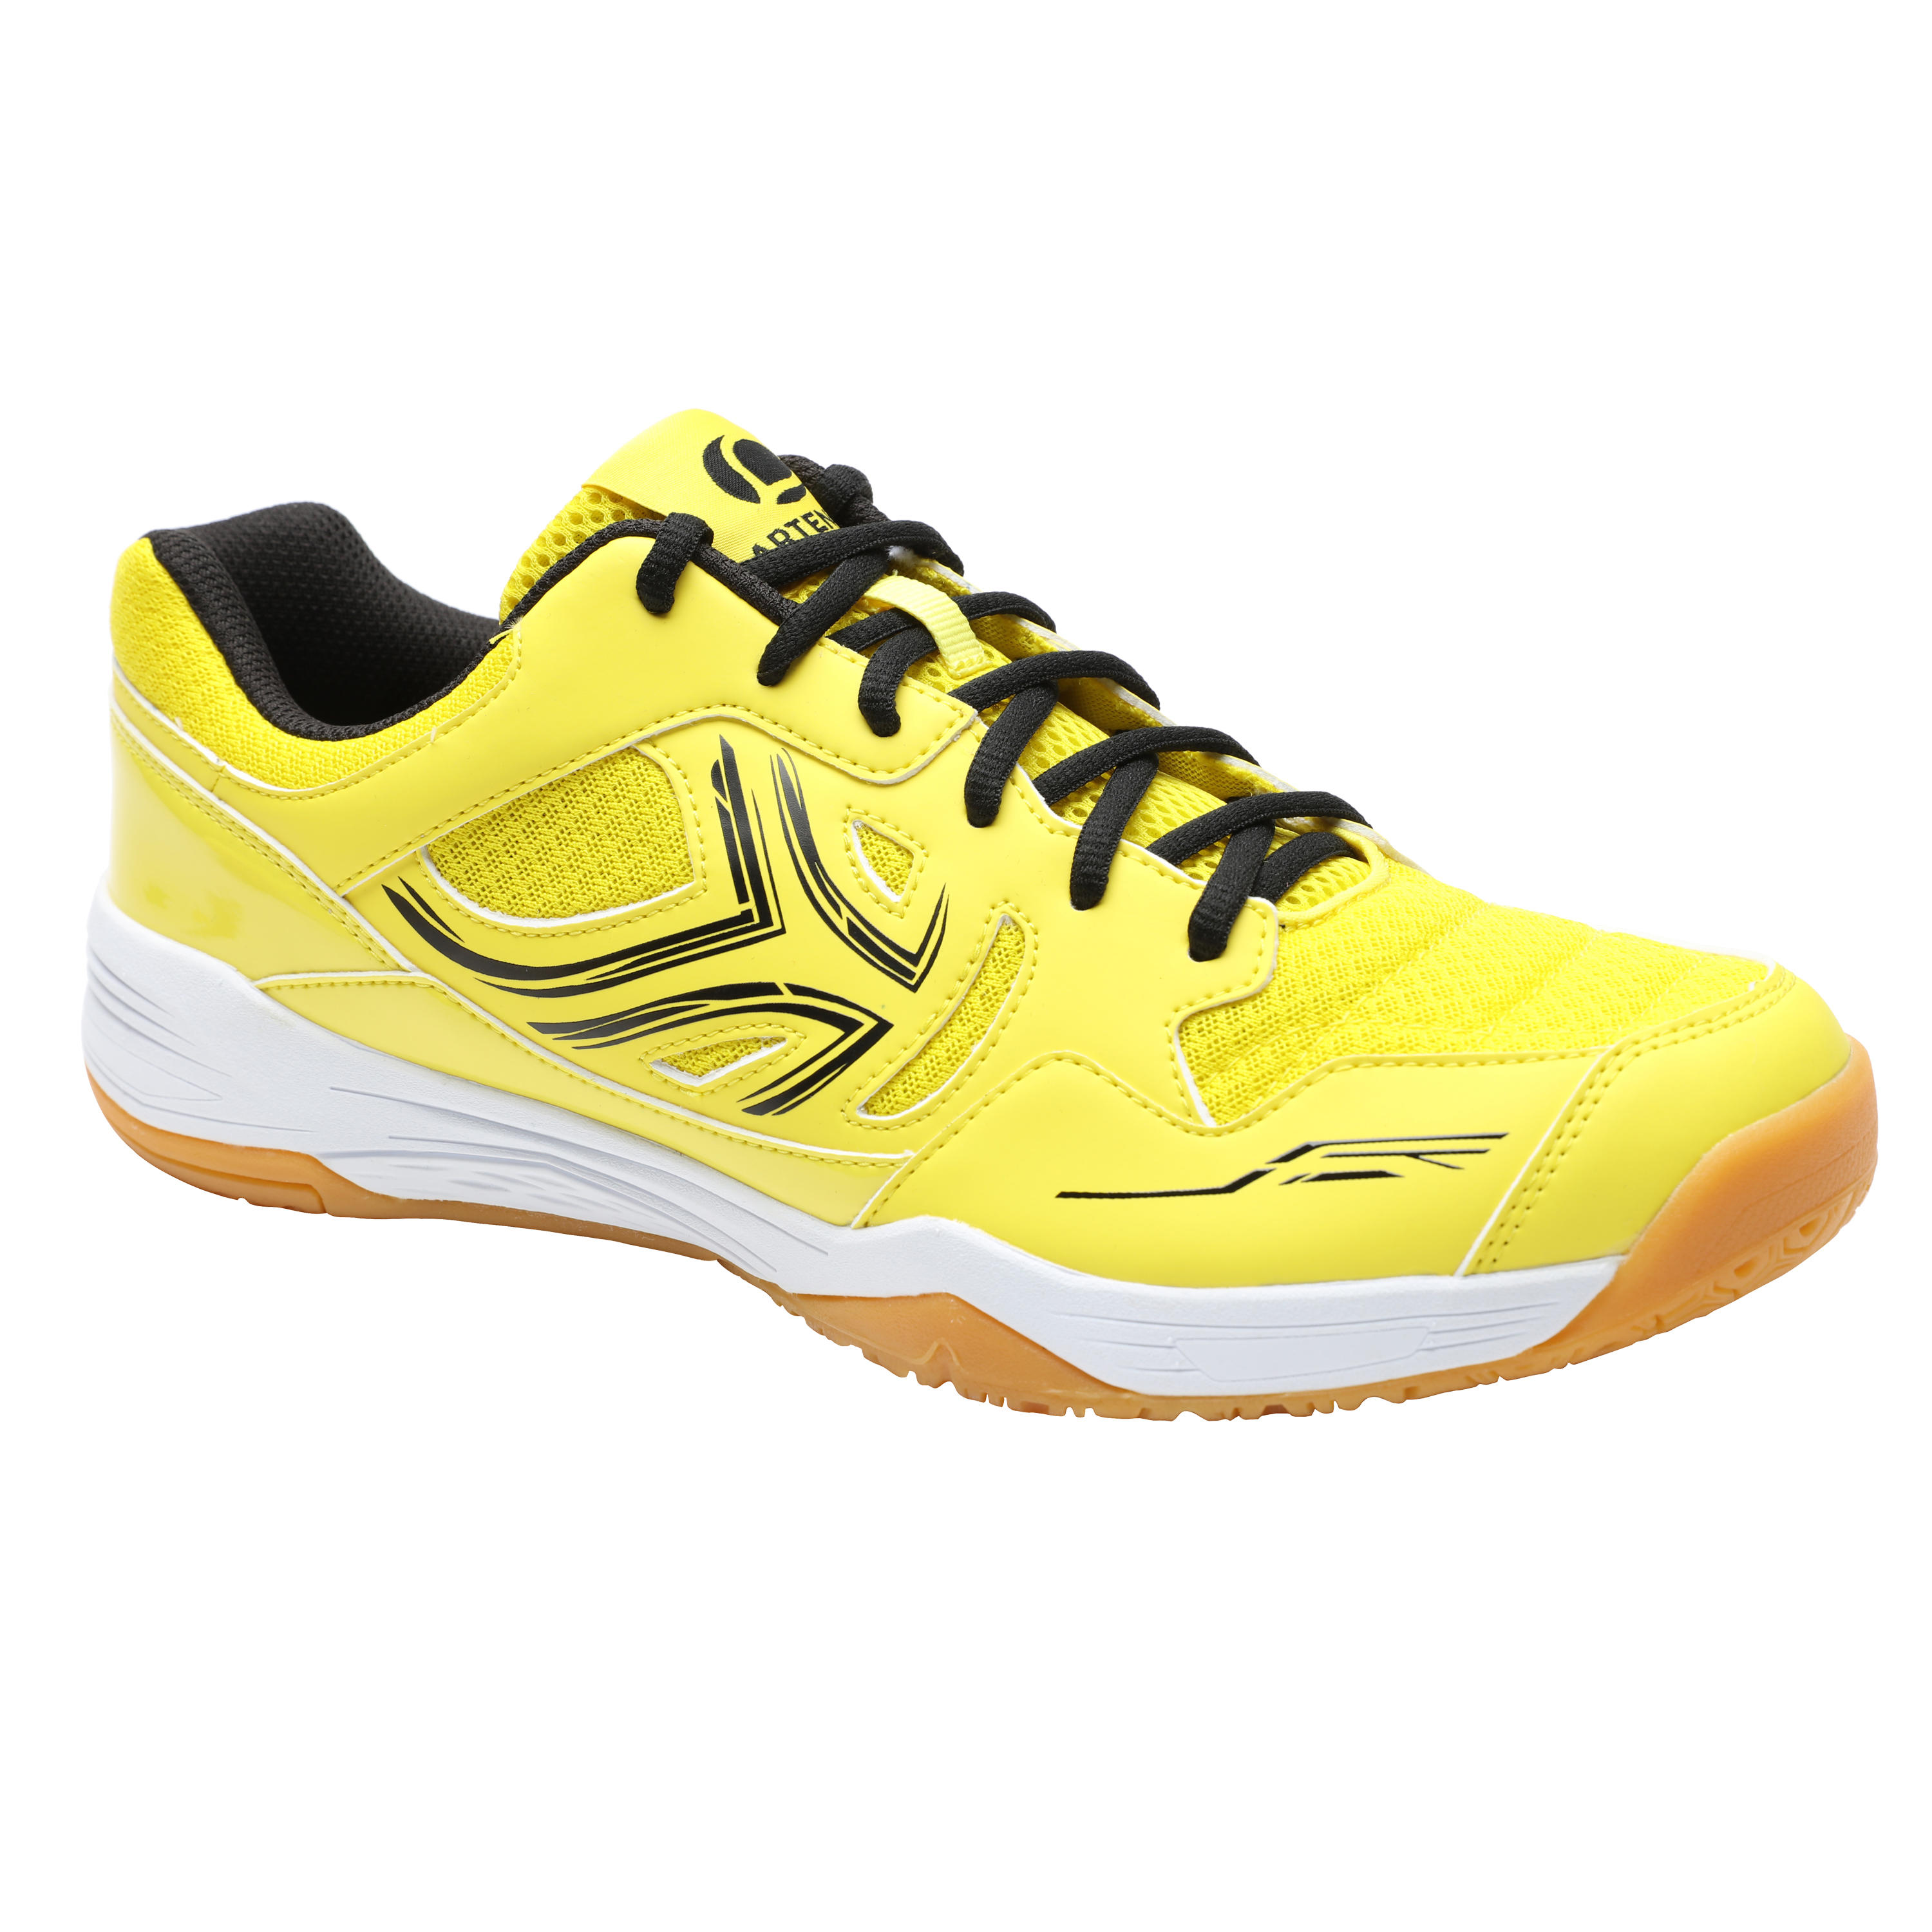 BS760 Badminton Shoes - Yellow